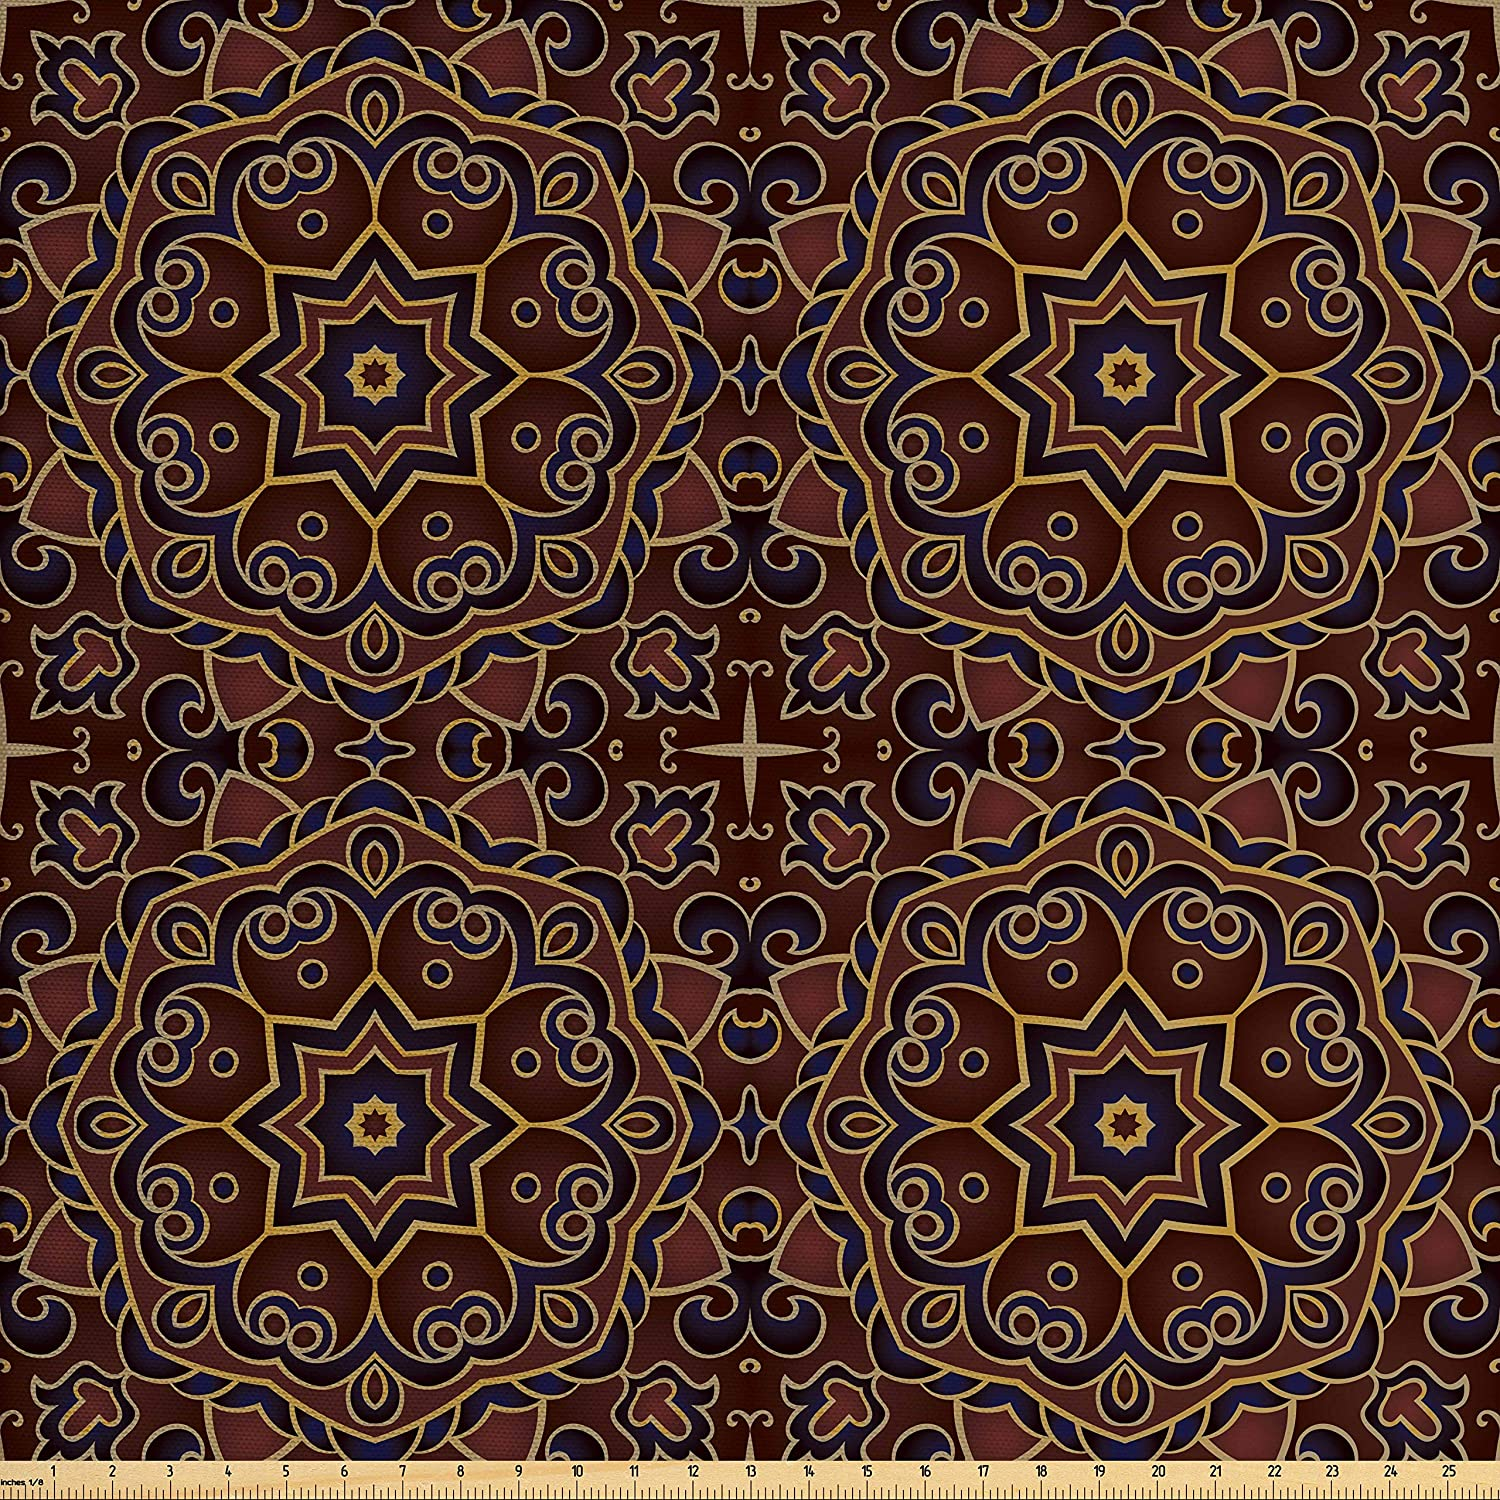 Lunarable Burgundy Fabric by The Yard, Oriental Mandala Floral Motifs Persian Mosaic Abstract, Decorative Fabric for Upholstery and Home Accents, 2 Yards, Navy Blue